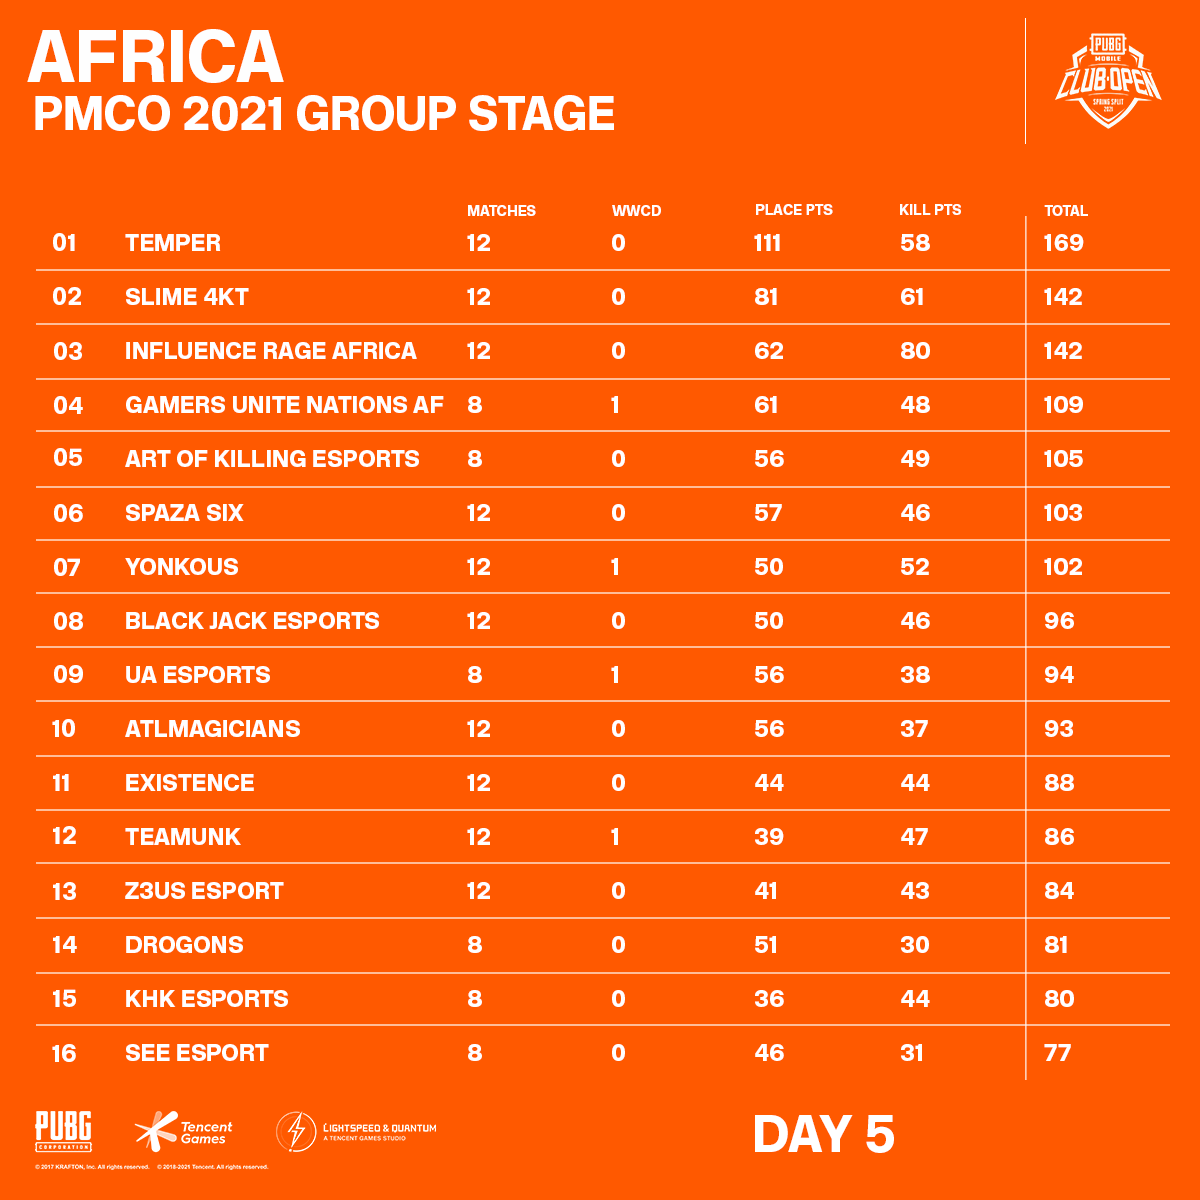 Africa PMCO 2021 Group Stage Day 5 Standings